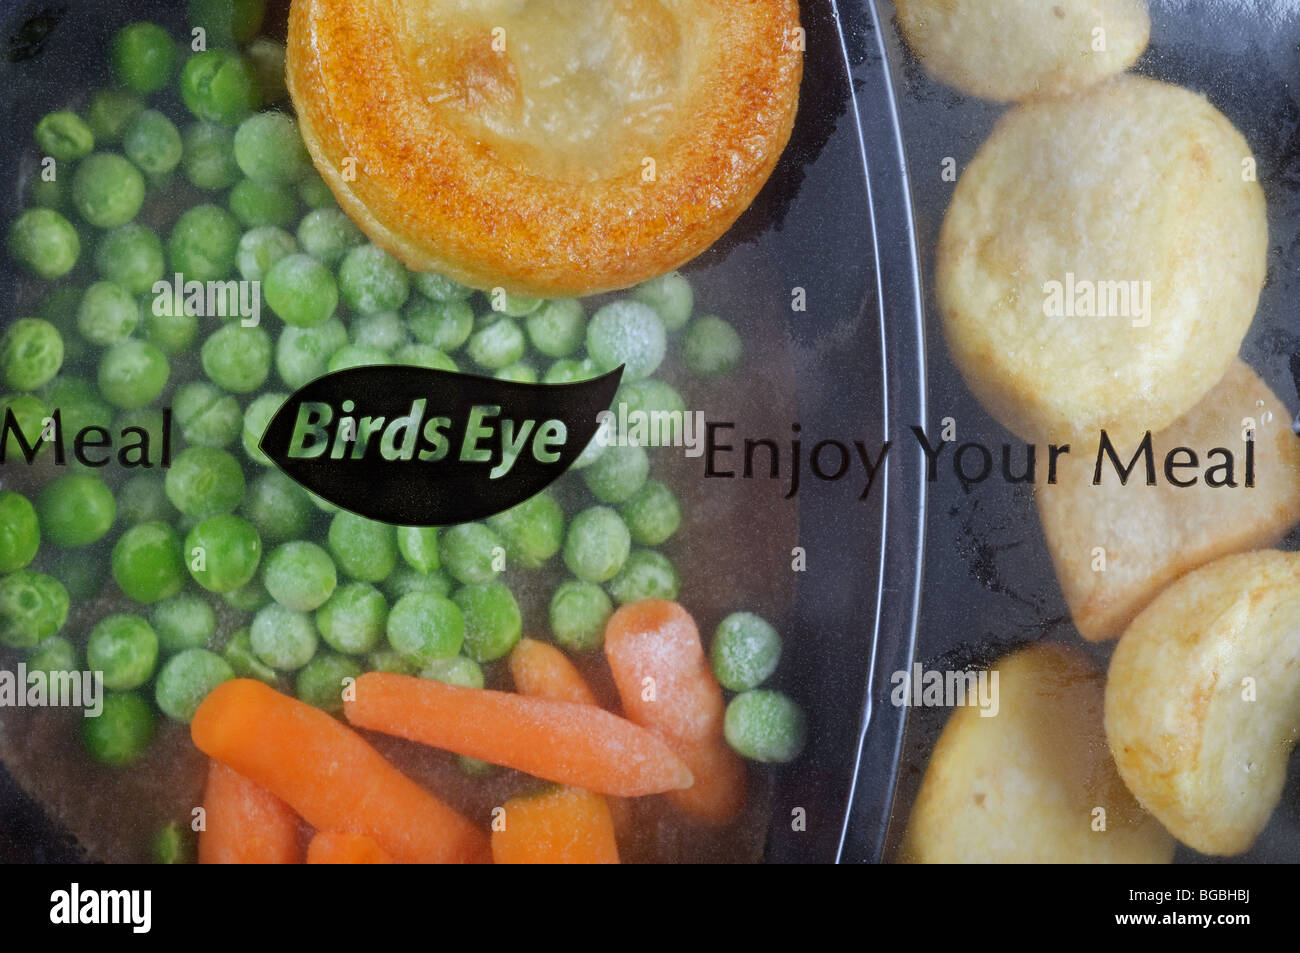 Birds Eye traditional beef ready meal - Stock Image